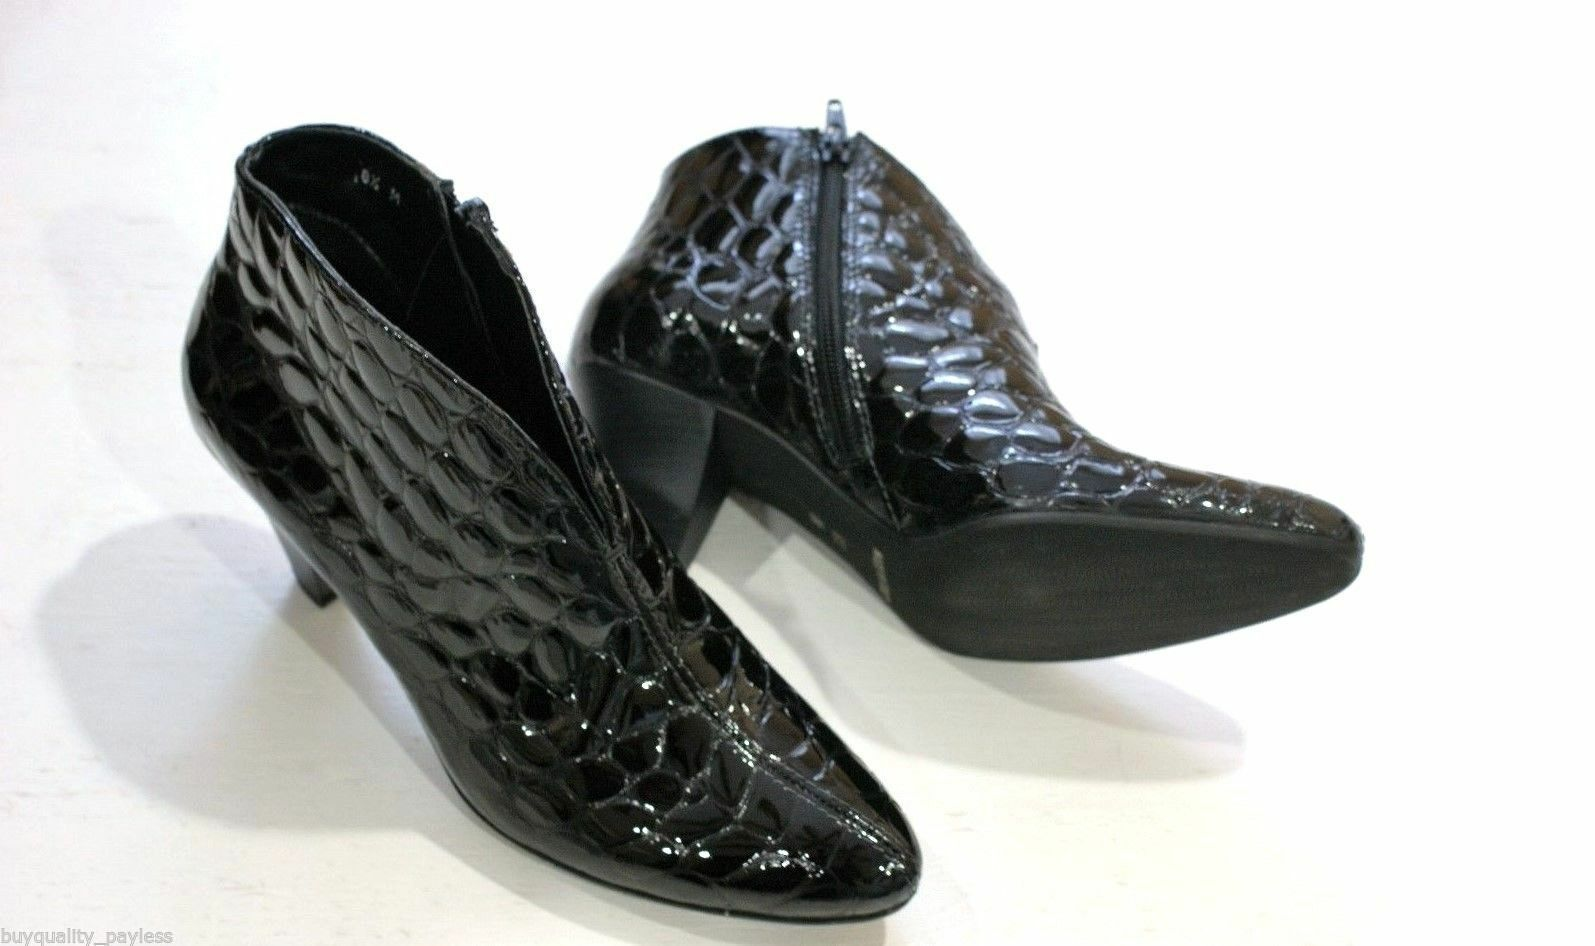 325 SESTO MEUCCI ABRIL CROCO Ankle Boots shoes shoes shoes Women's 8 NEW IN BOX ff1983